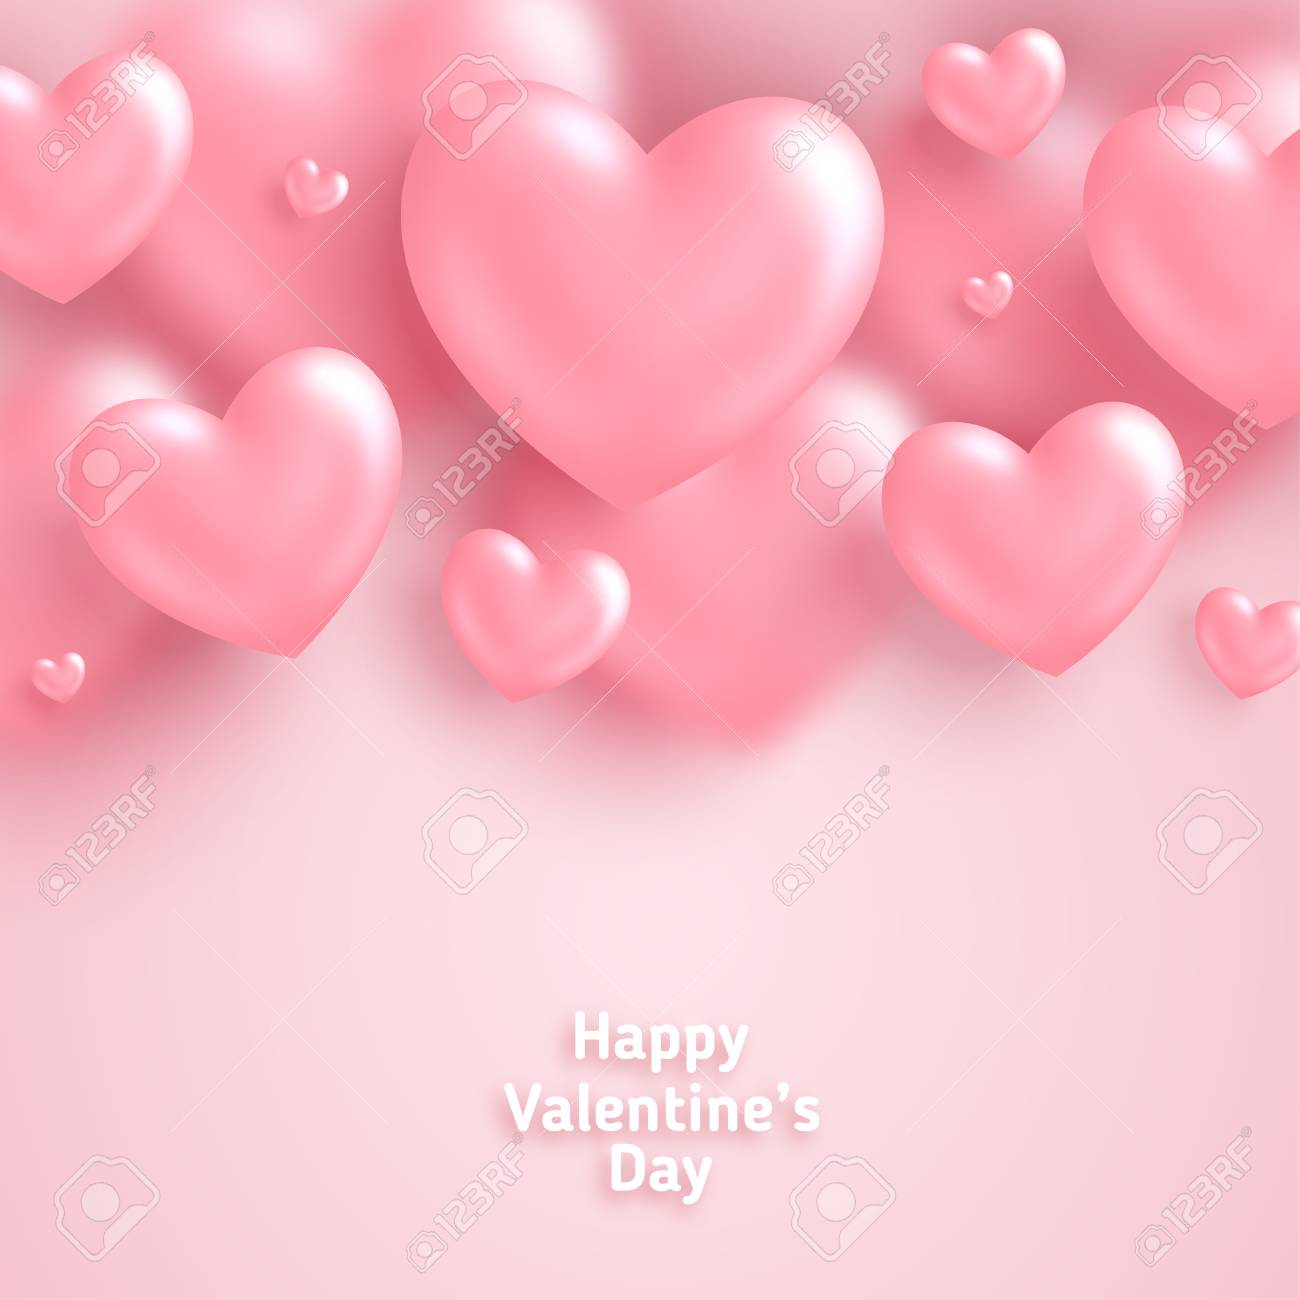 Pink Valentines Day Background 3d Hearts On Bright Backdrop